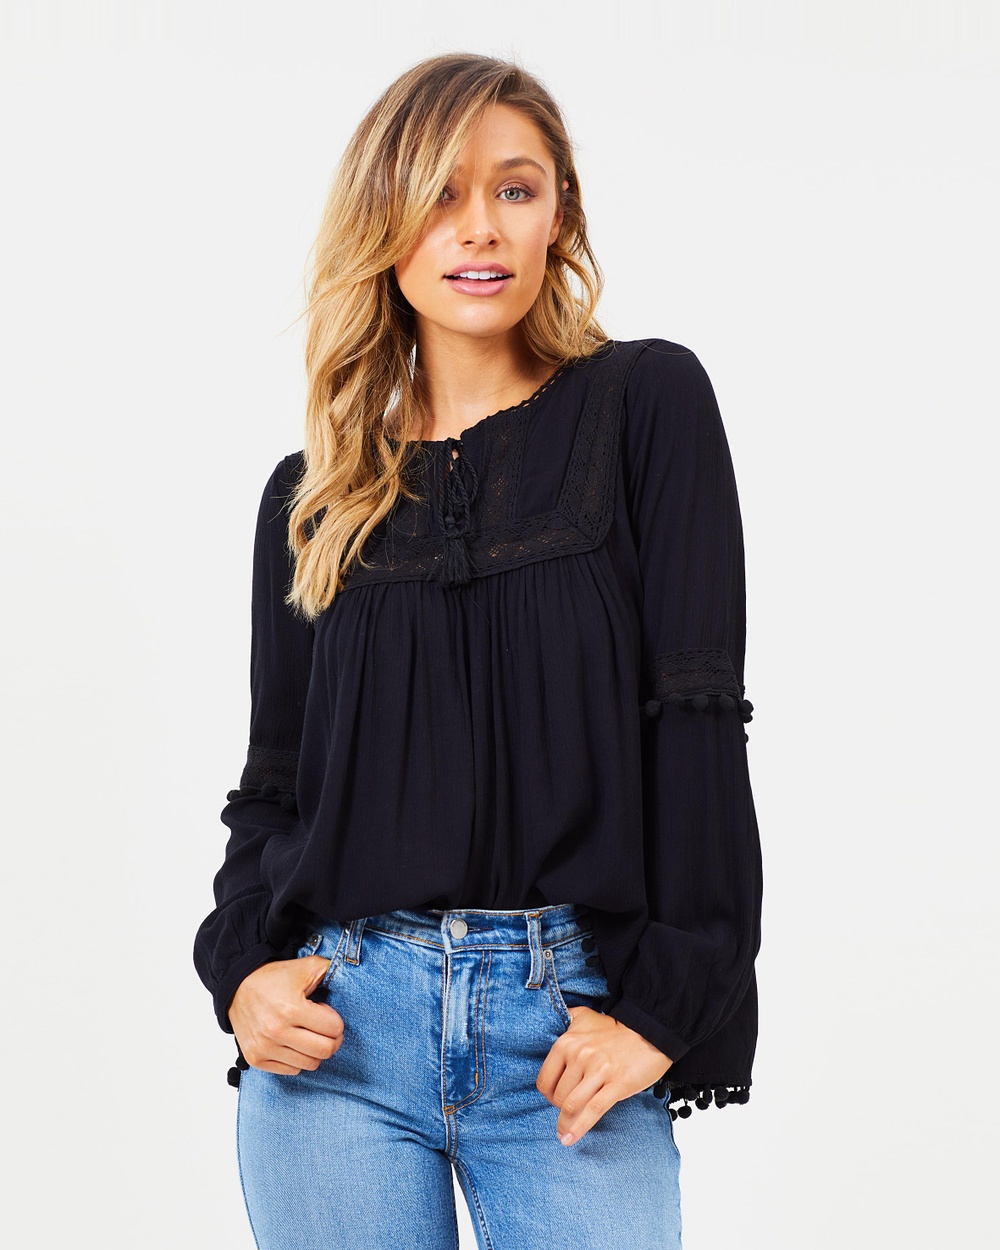 Photo of Sass Sass Free Spirit Pom Pom Blouse Tops Black Free Spirit Pom Pom Blouse - Dreamy and elegant, the Free Spirit Pom-Pom Blouse by Sass is stylish, elevated and sophisticated. With a lace-trimmed round neckline, blouson sleeves and playful pom-pom adornments, this blouse embraces one-of-a-kind minimalism with ease. Pair yours with some statement jewellery and a simple pair of straight-leg jeans for a put-together finish. Our model is wearing a size AU 8 blous